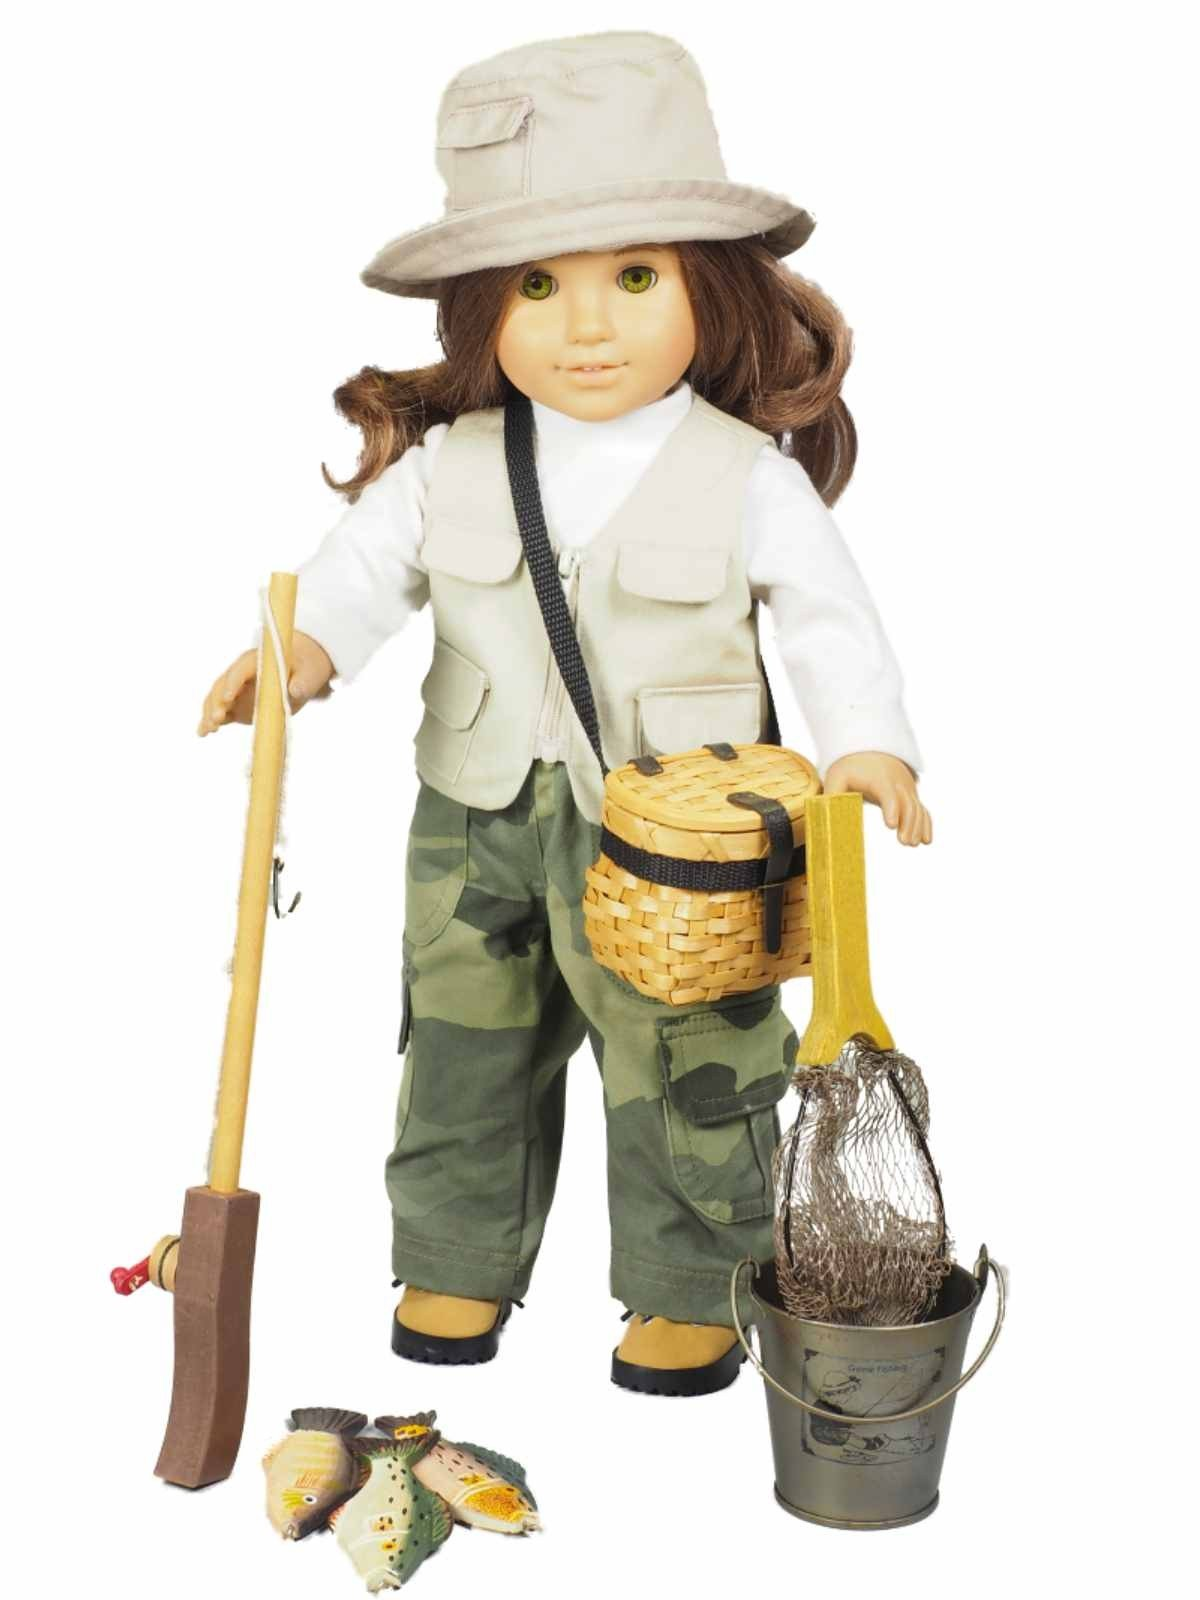 Clothes Accessories: Great Outdoors Fishing Adventure Doll Clothes And